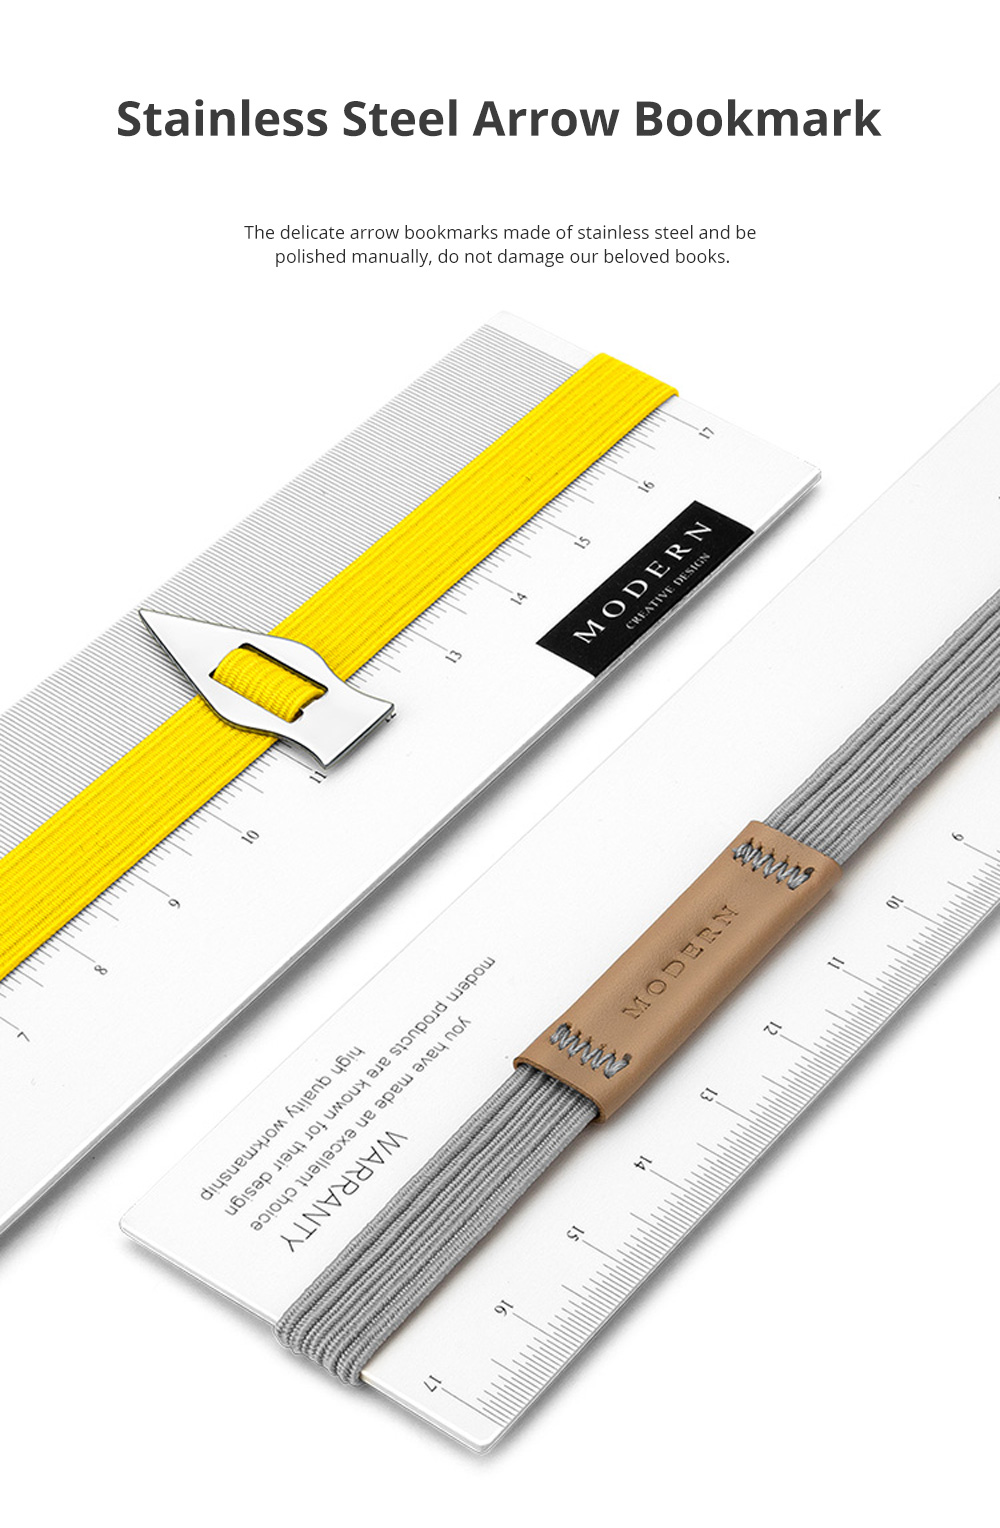 Reusable Arrow Bookmark with High Elastic Strap and Precise Navigation for School Supplies Stationery 2pcs 2